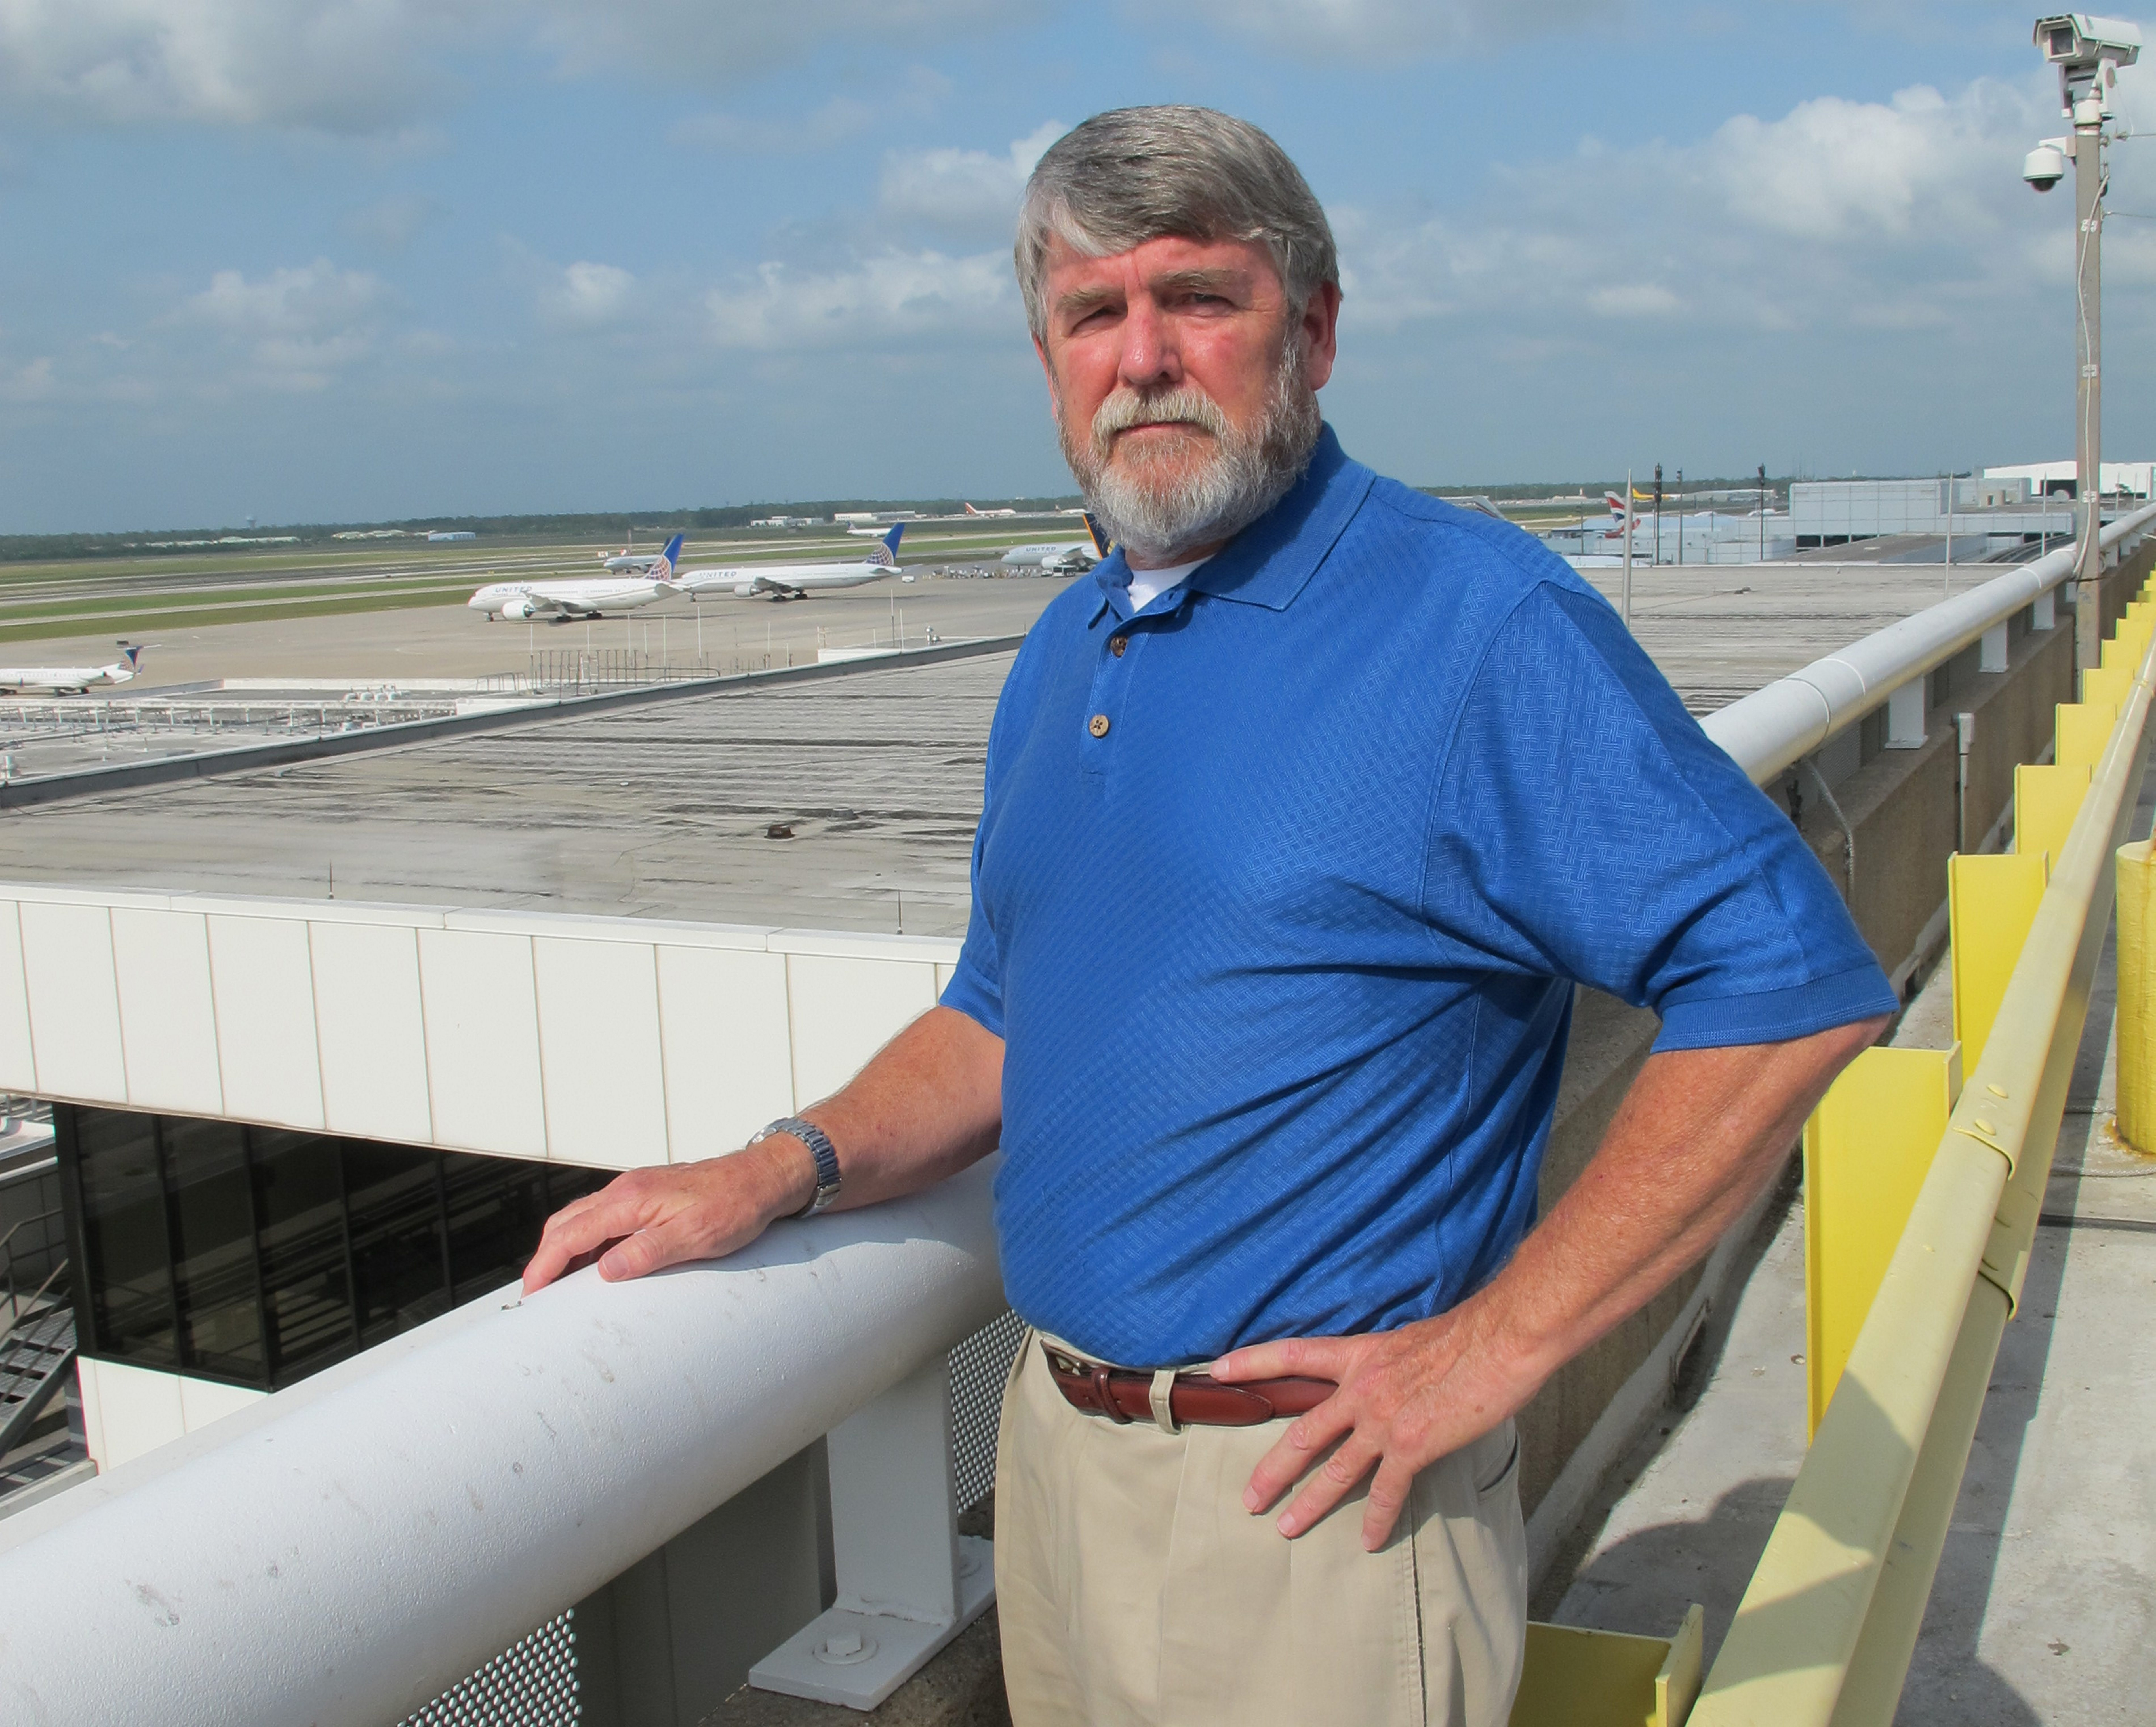 """He said: 'I want you to do this right away and if not, I will have to take significant action against your airline.' We, of course, took that to mean that he'd shut us down."" Dan Morgan, former vice president of safety and regulatory compliance at Colgan Air, recalling FAA official's warning to improve the airline's troubled safety culture"